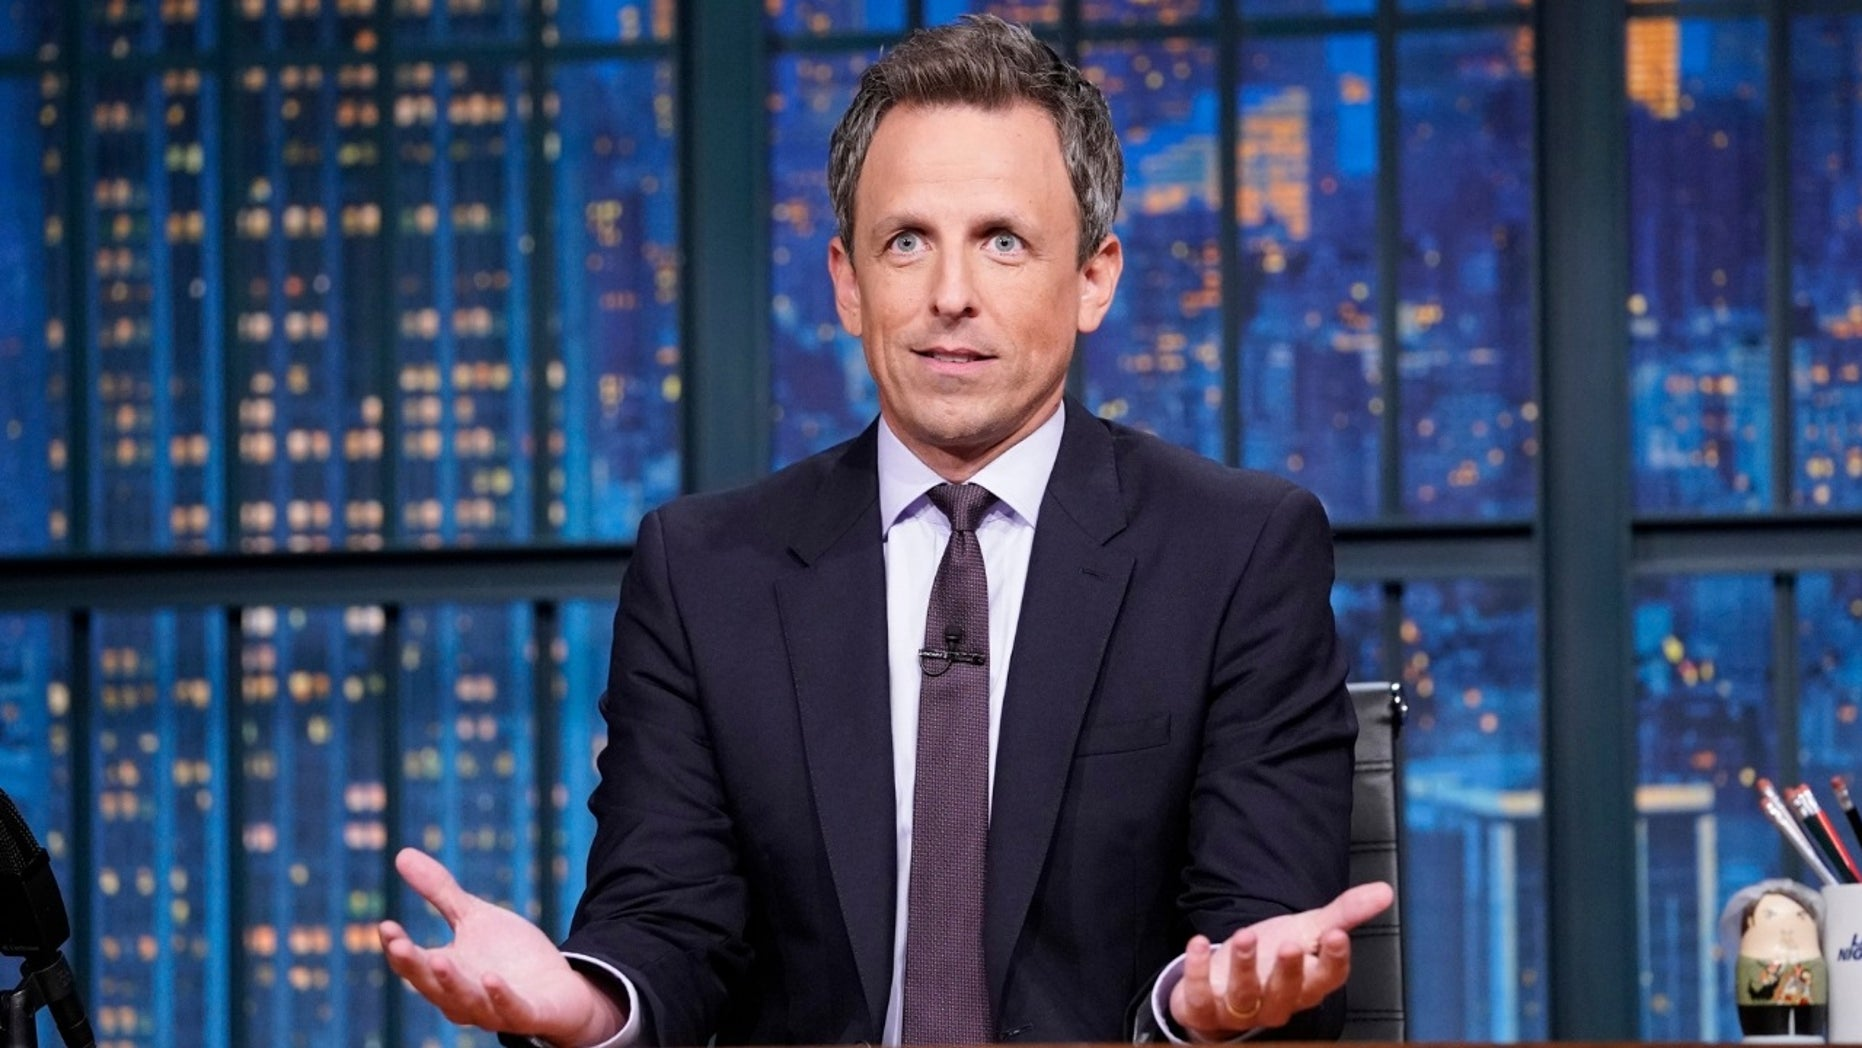 Seth Meyers mocked MSNBC for spending time analyzing where Beto O'Rourke rented a minivan.